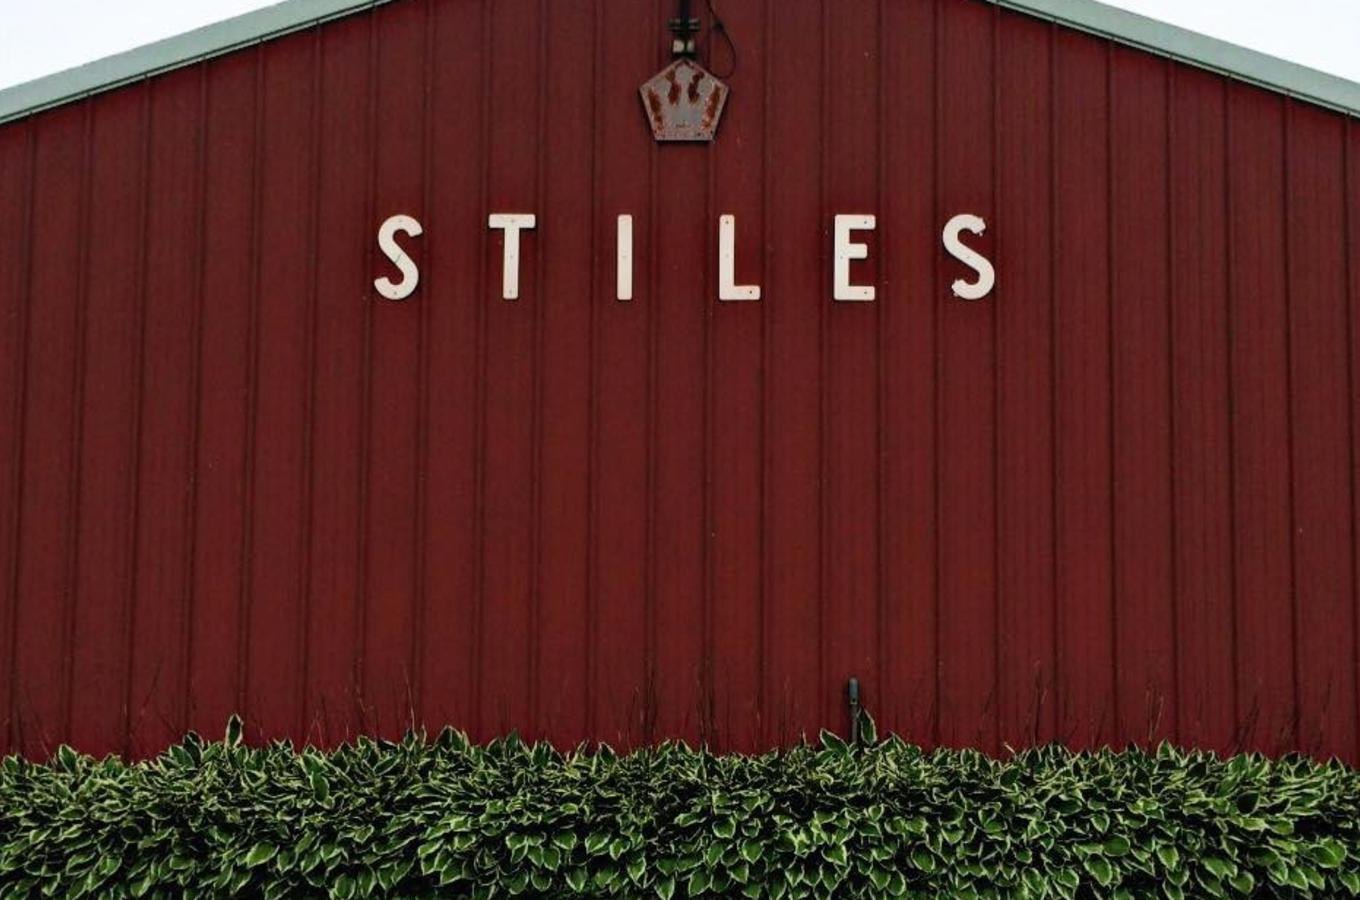 Stiles Barn Sign - Stiles FB page pic